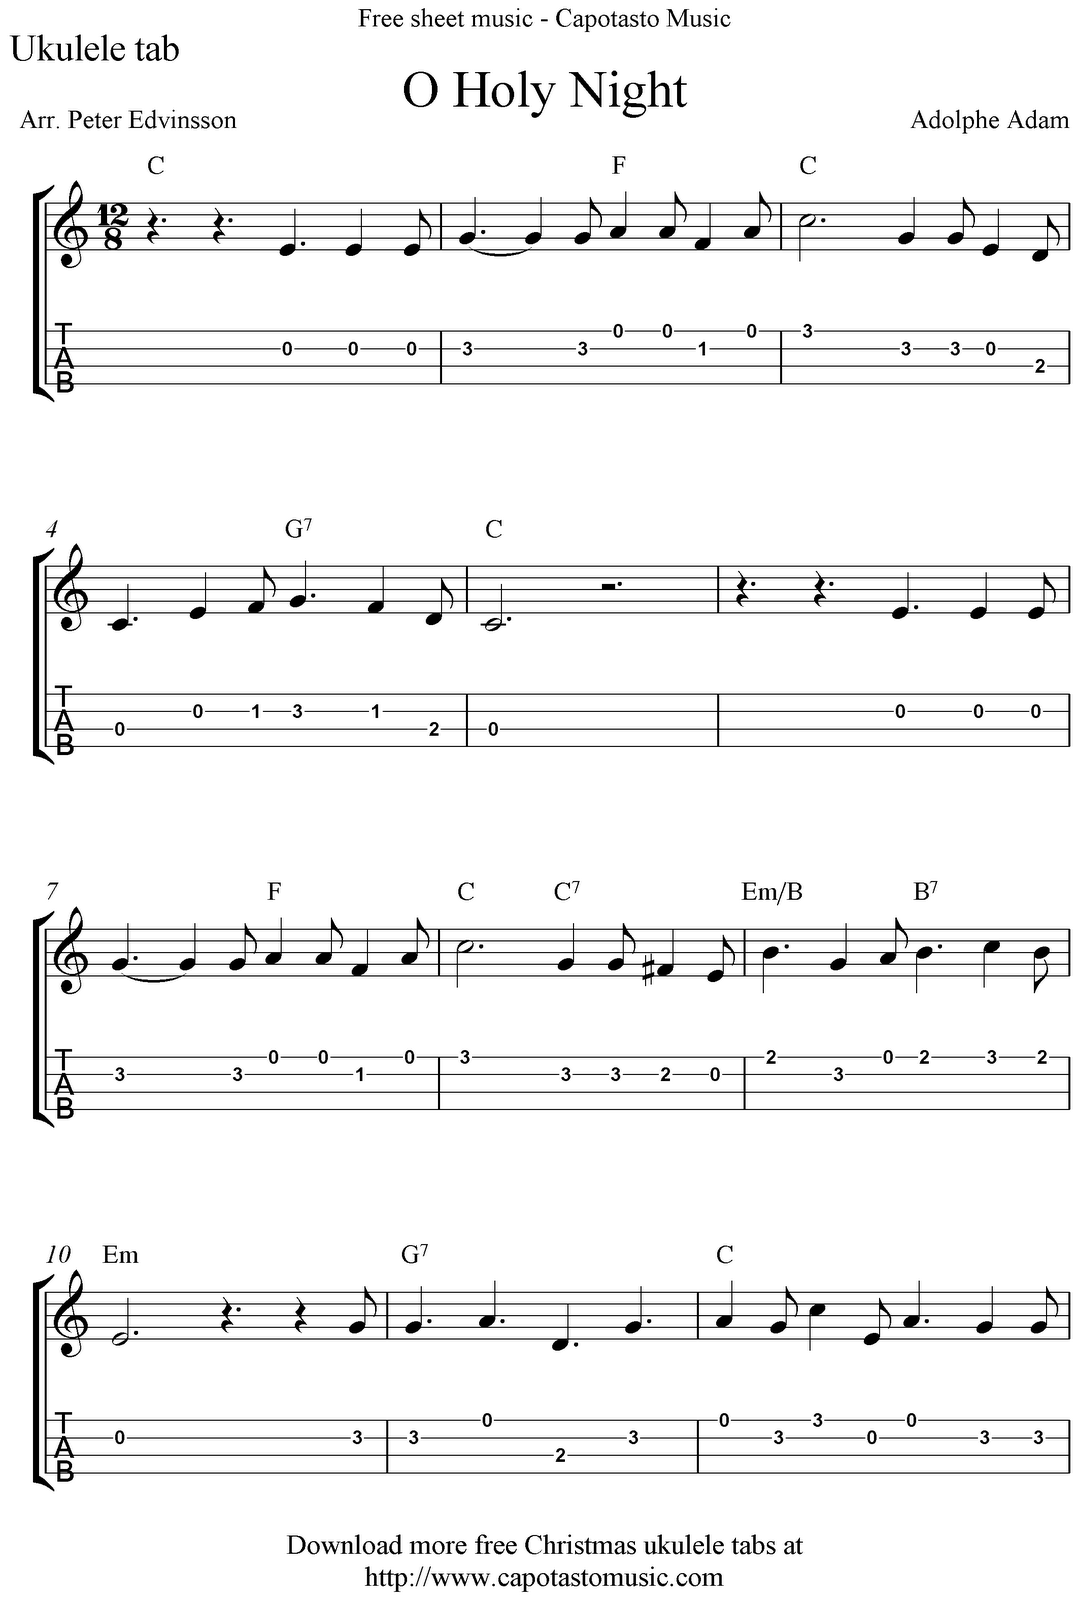 """O Holy Night"" Ukulele Sheet Music Free Printable"